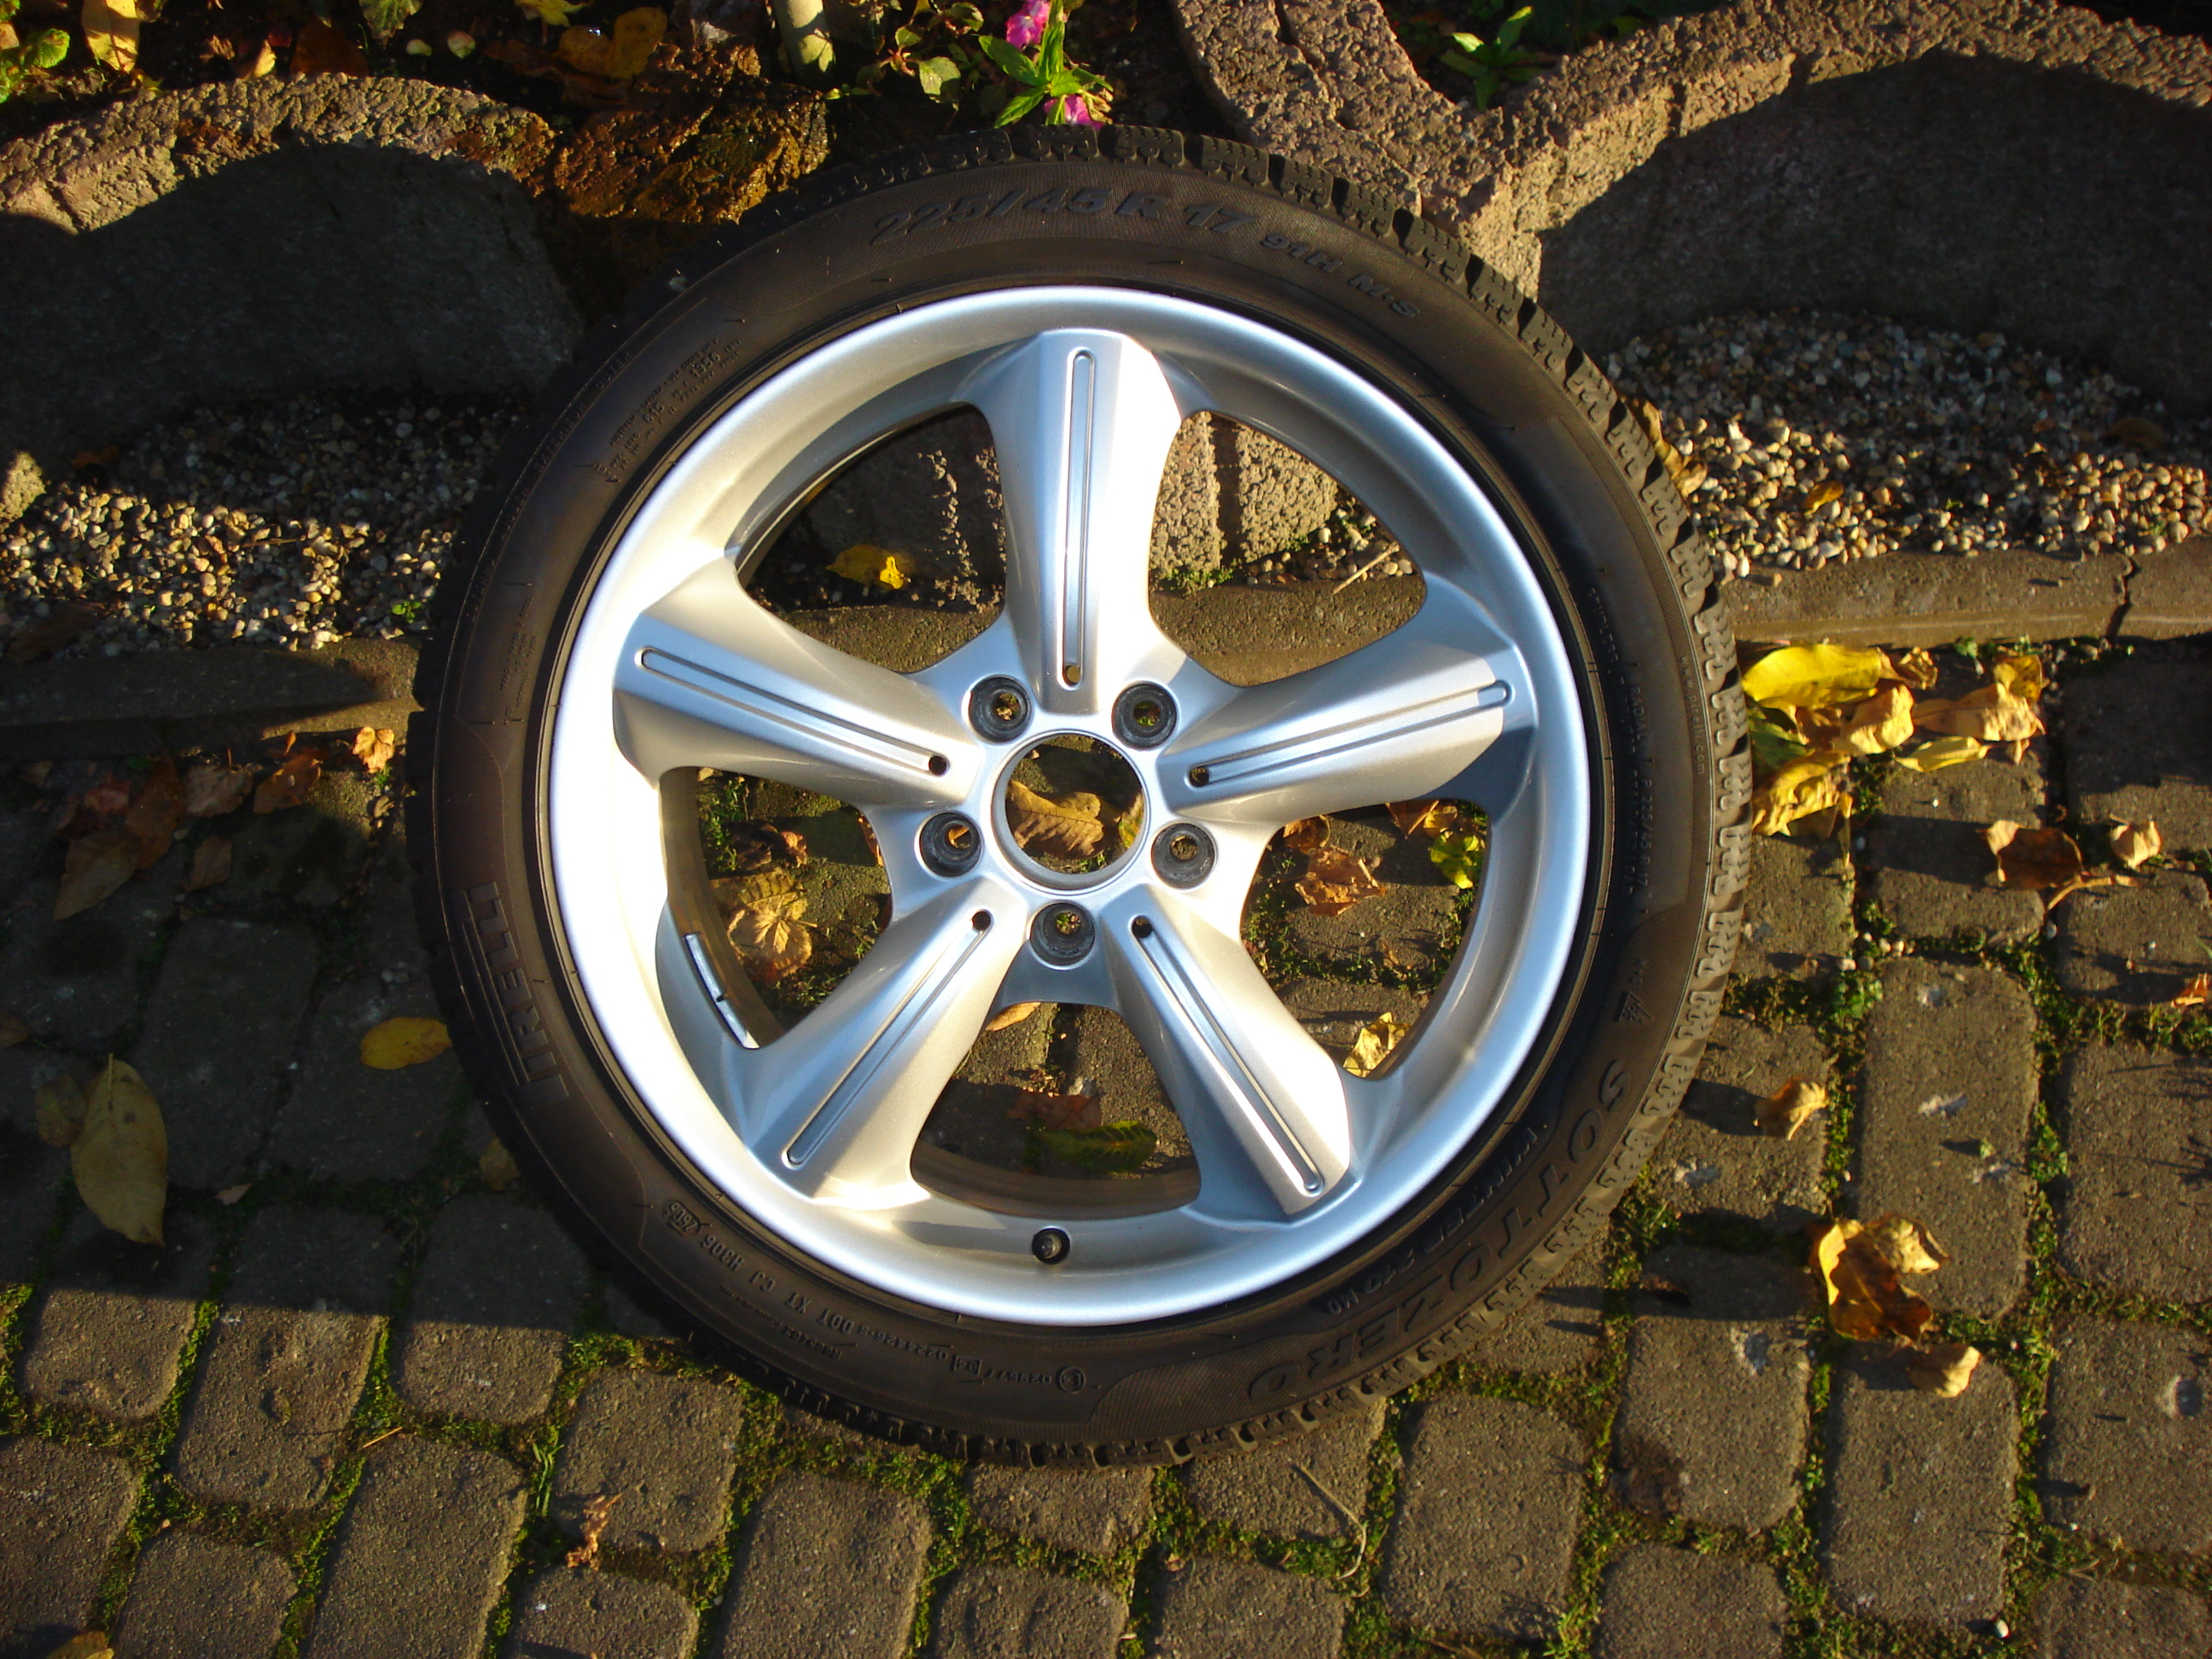 Bbs rs 3teilig 10jx16 mercedes w126 w116 w123 w107 in for Mercedes benz complaints procedure